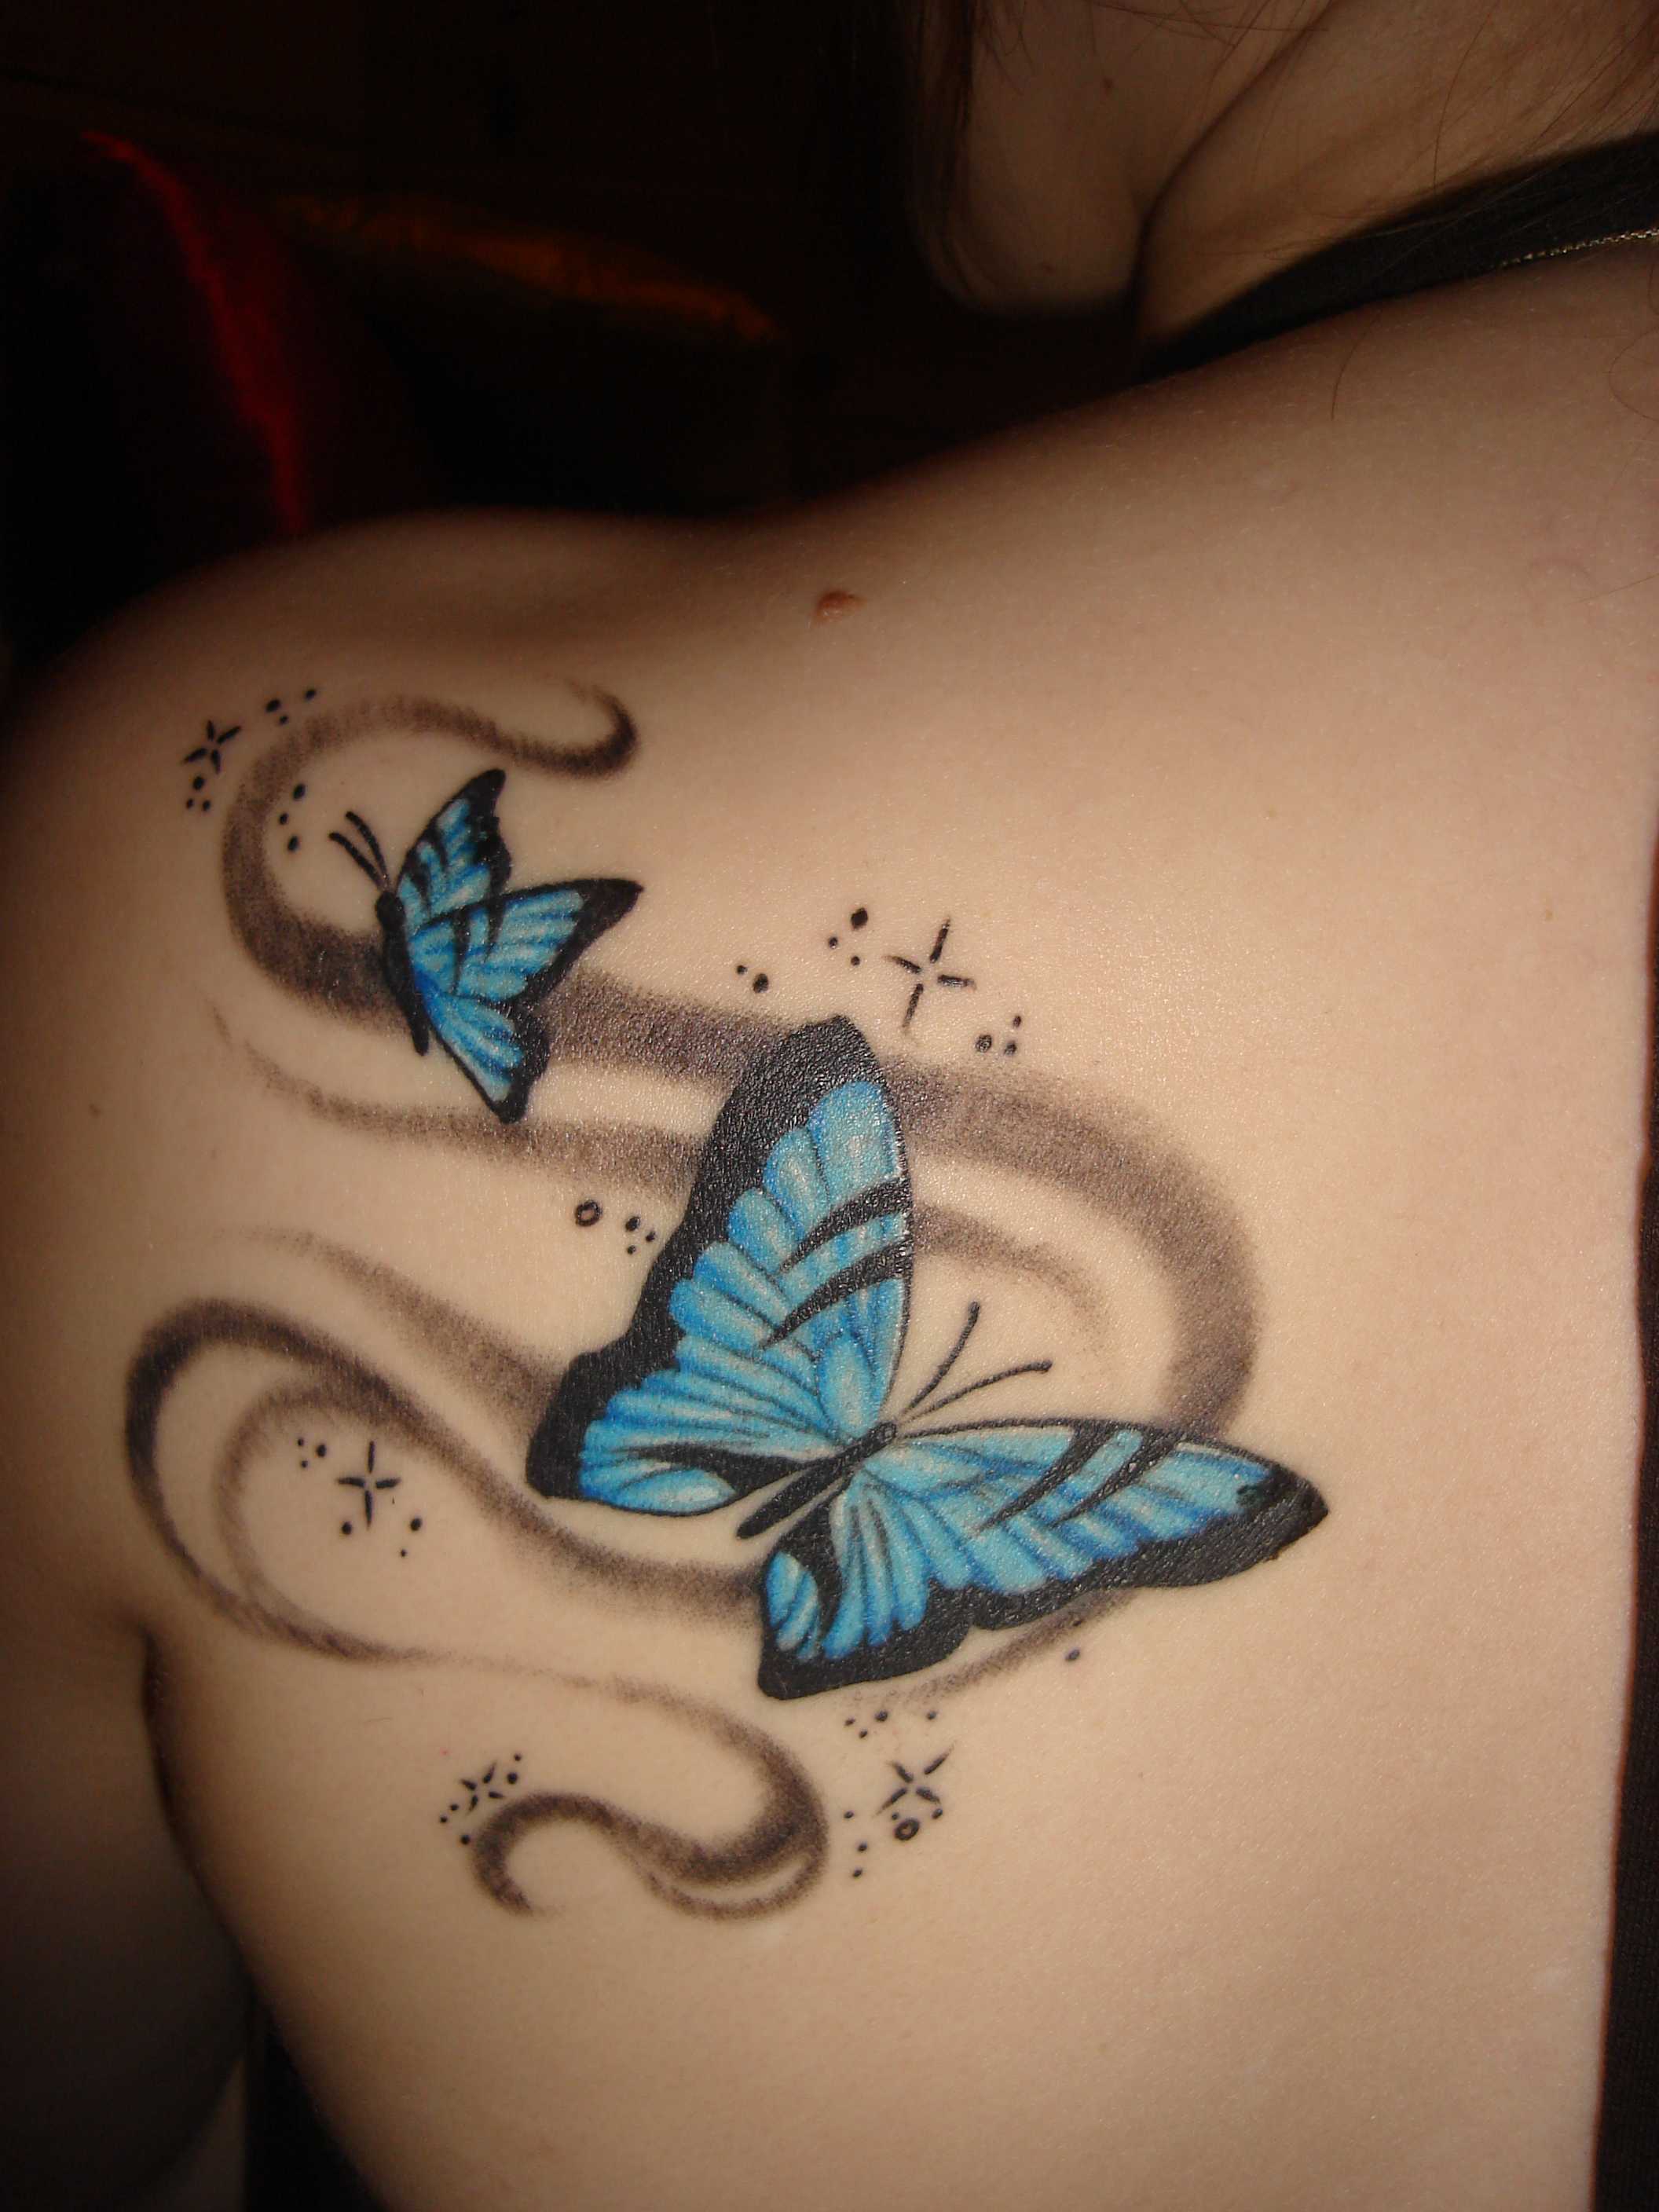 Butterfly tattoos femininity of butterflies roomfurnitures for Images of butterfly tattoos